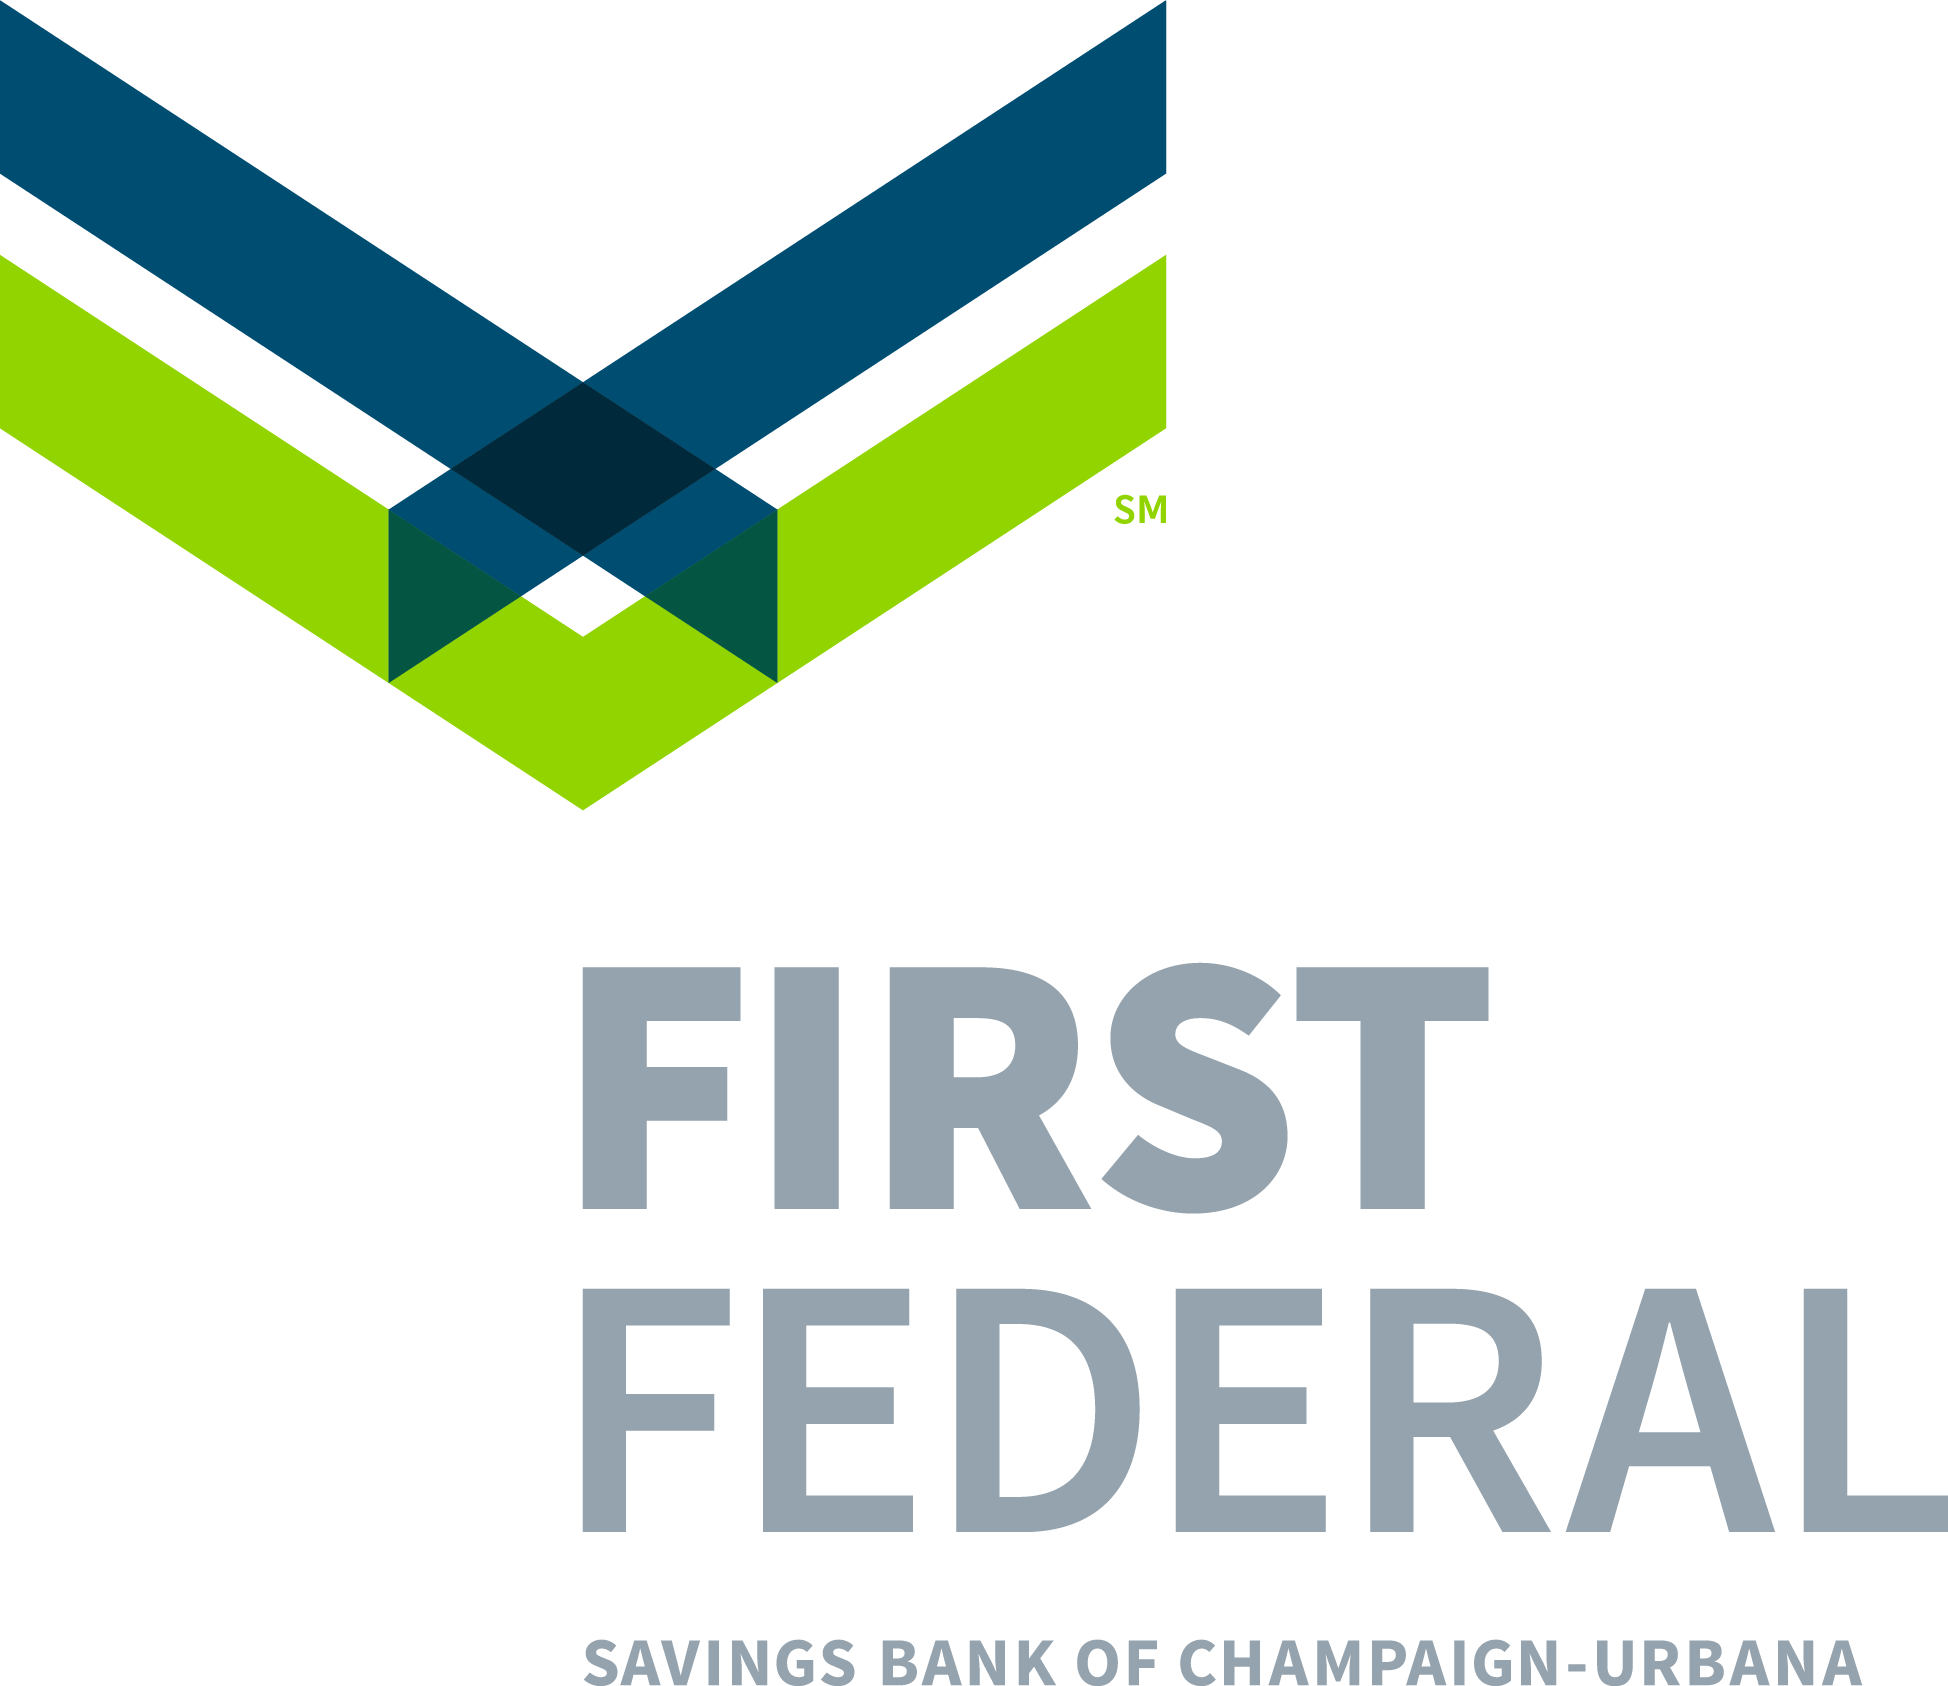 First Federal Savings Bank of Champaign-Urbana - Logo